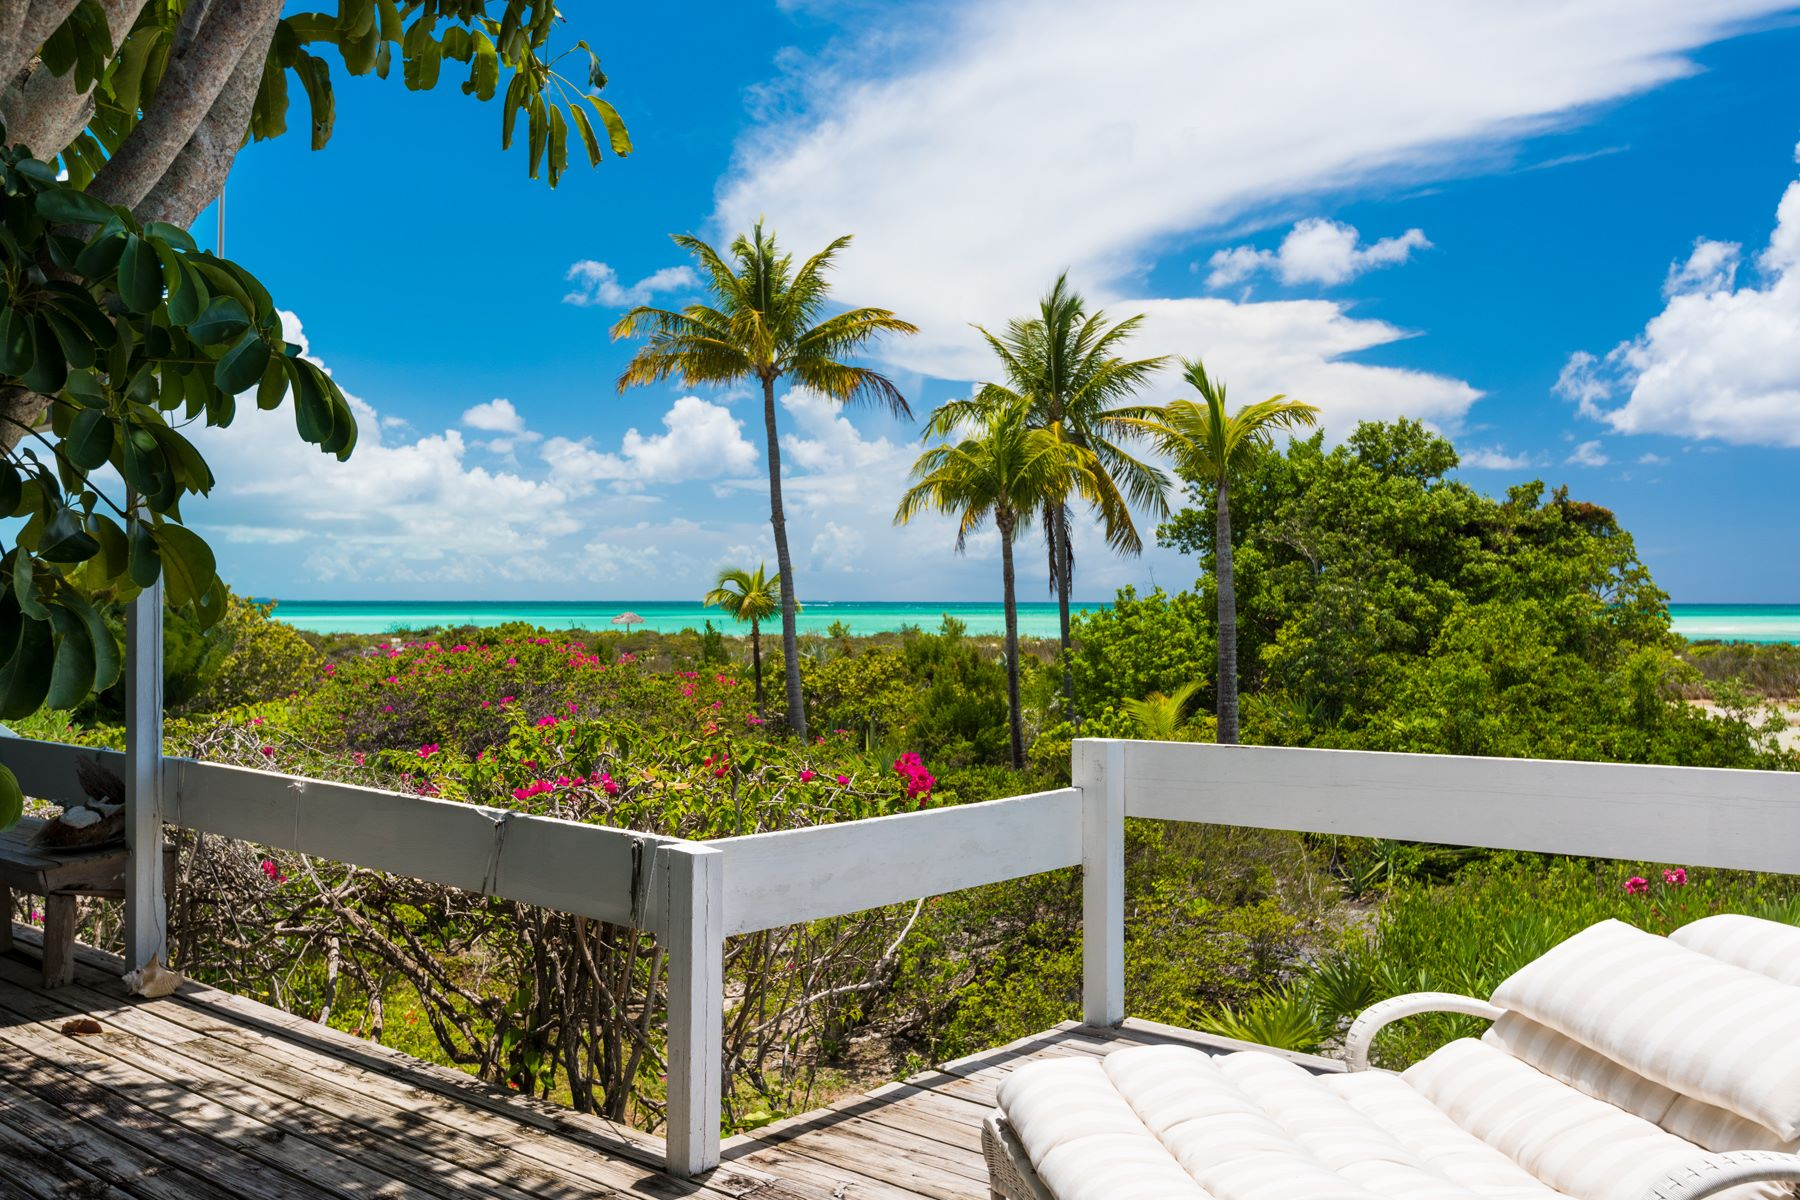 Additional photo for property listing at Orchid Point Oceanfront Pine Cay, Pine Cay TCI Turks And Caicos Islands